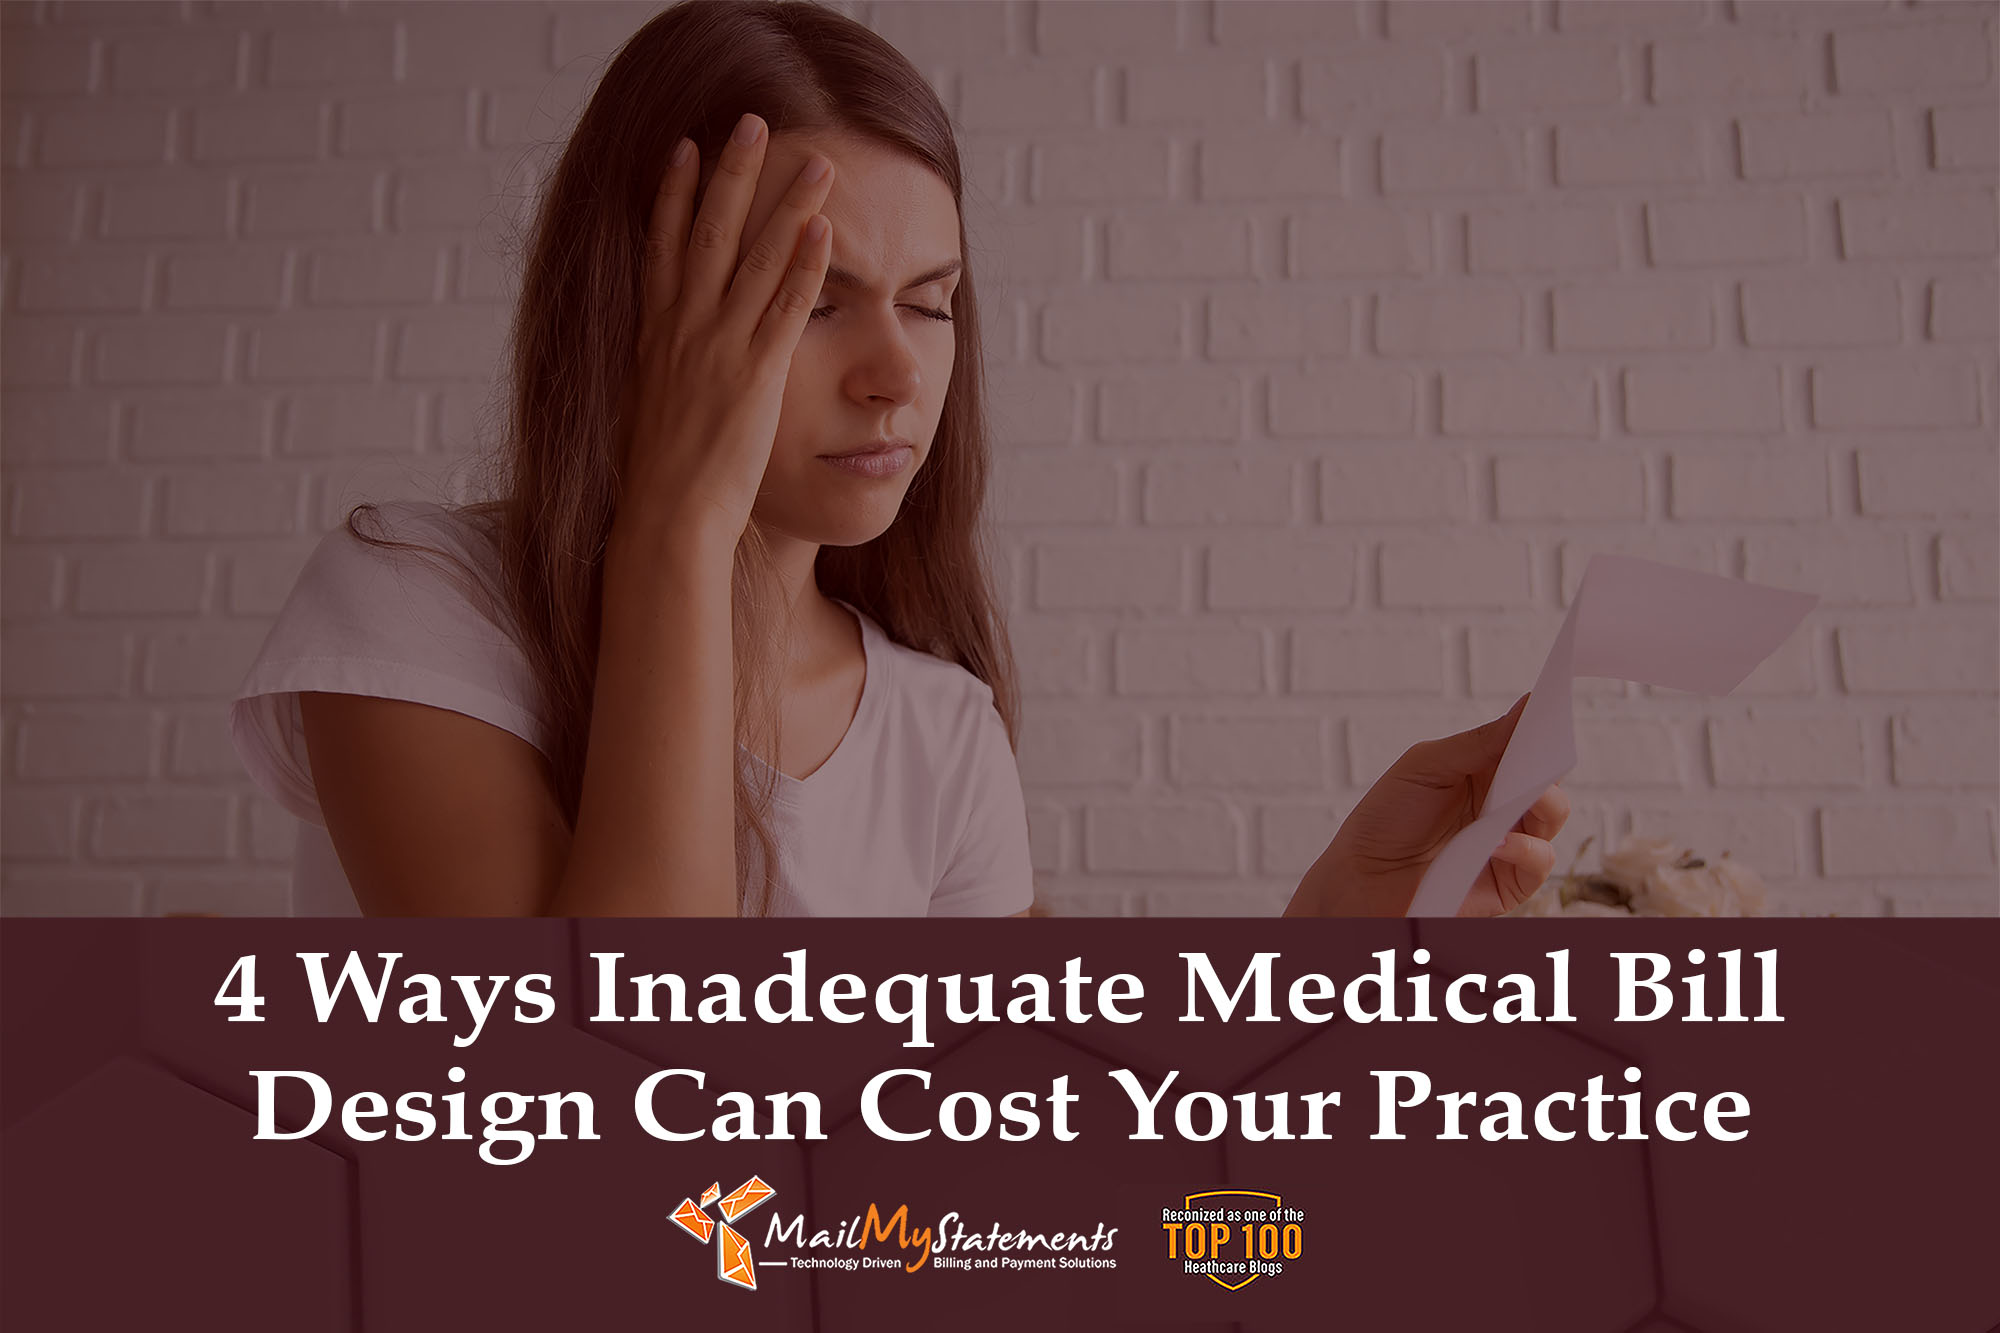 4 Ways Inadequate Medical Bill Design Can Cost Your Practice